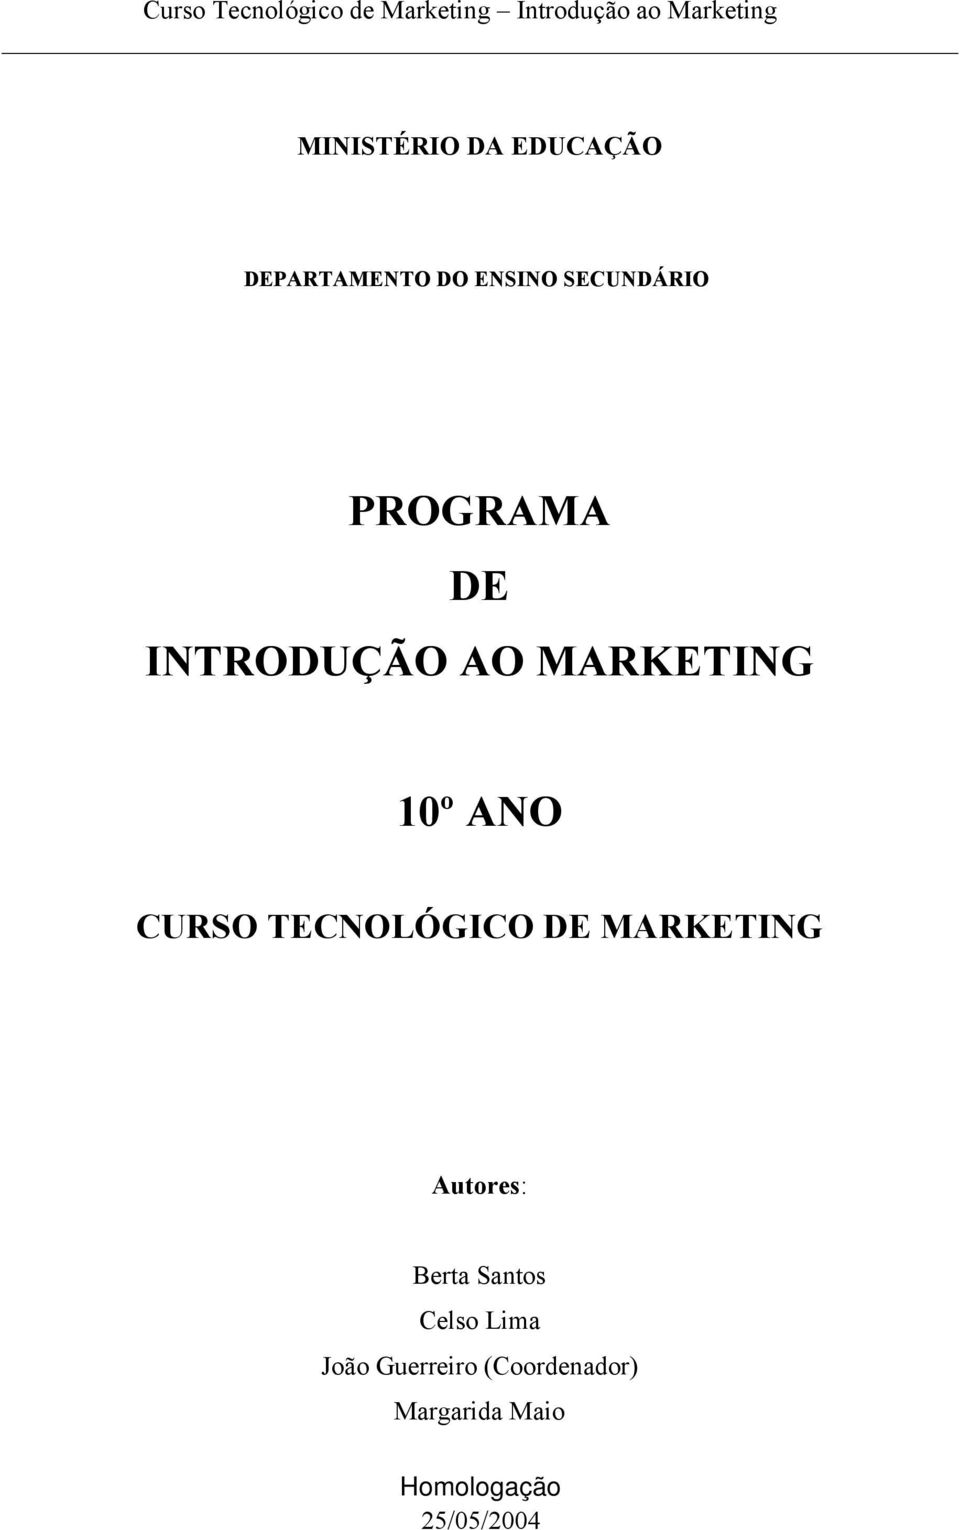 CURSO TECNOLÓGICO DE MARKETING Autores: Berta Santos